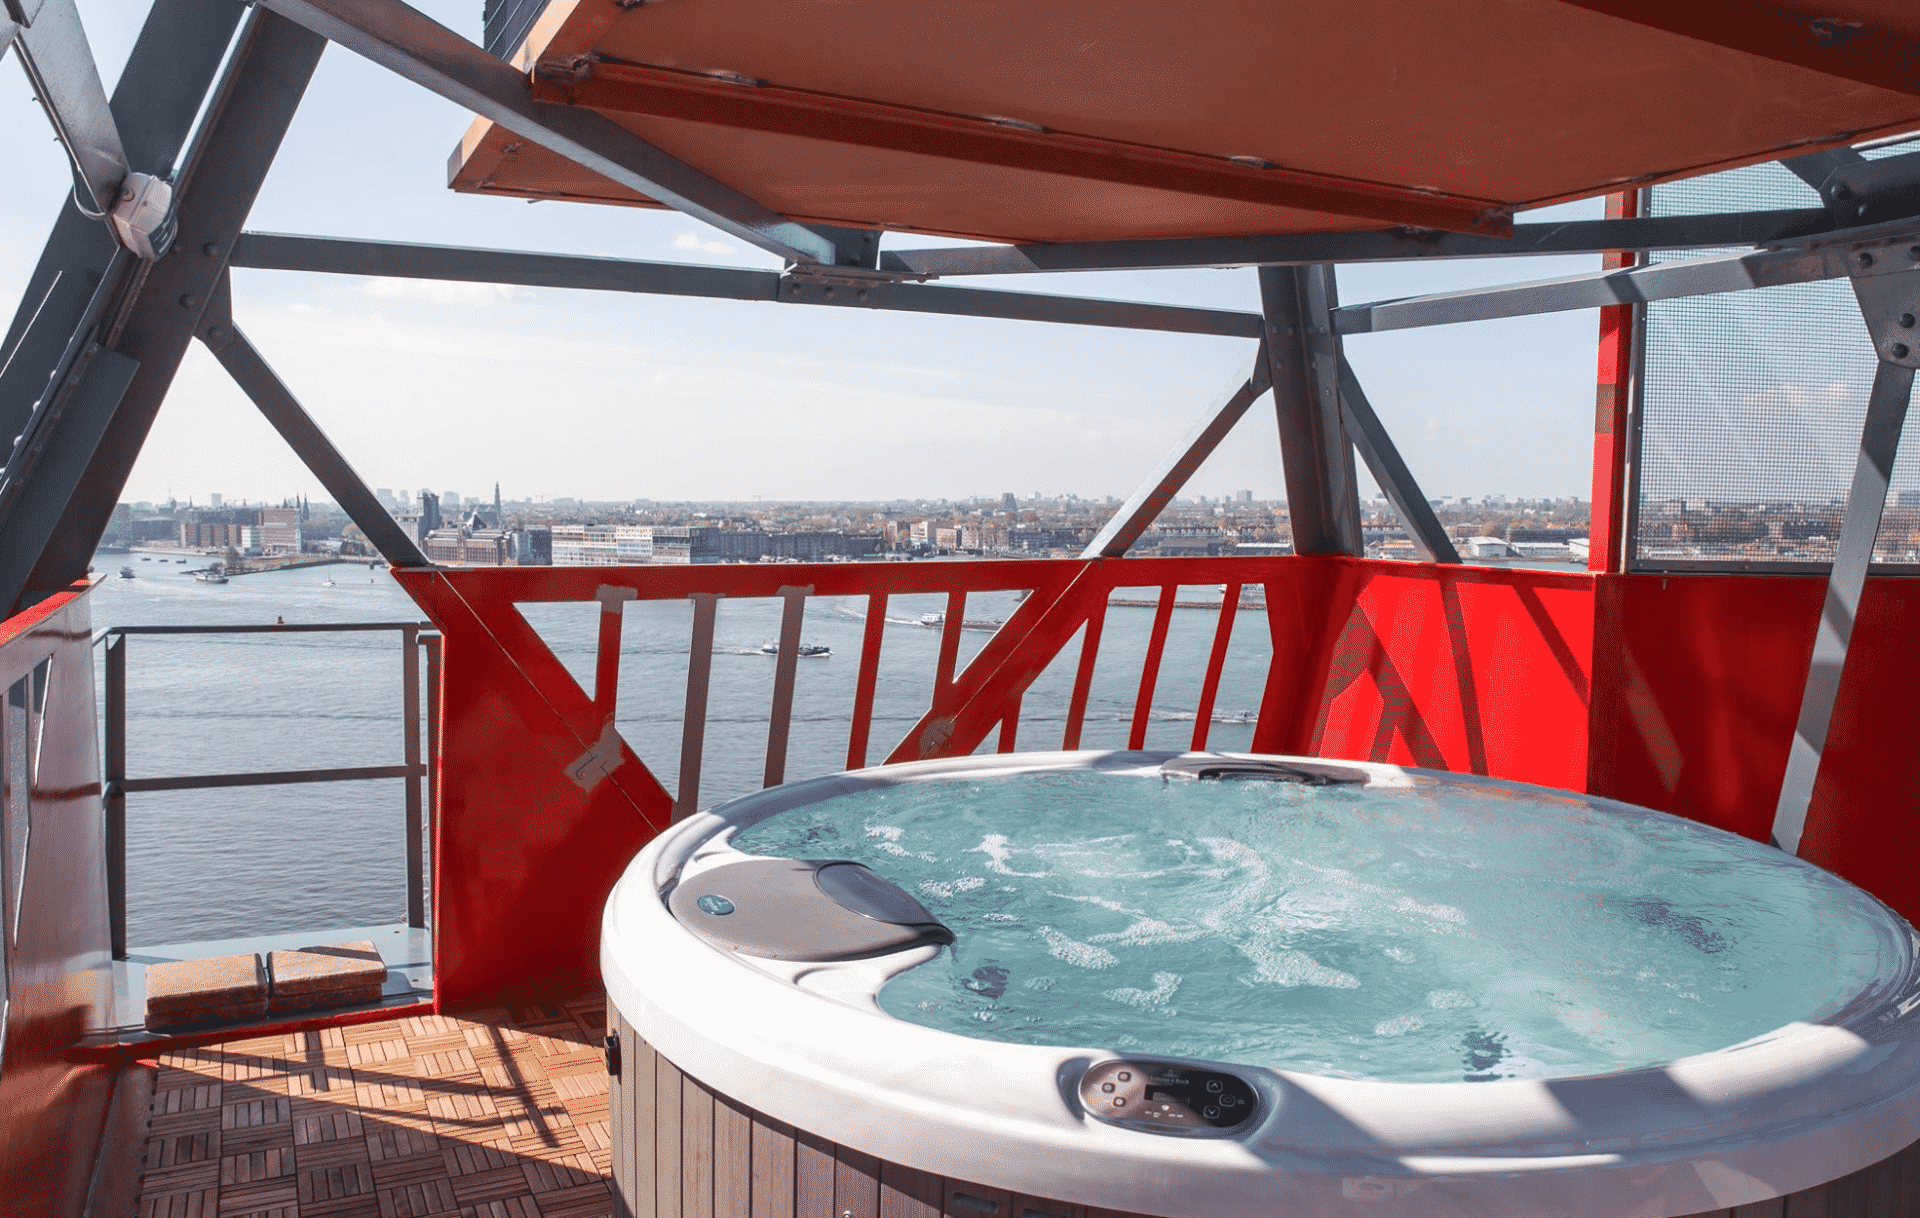 Amsterdam rooftop jacuzzi